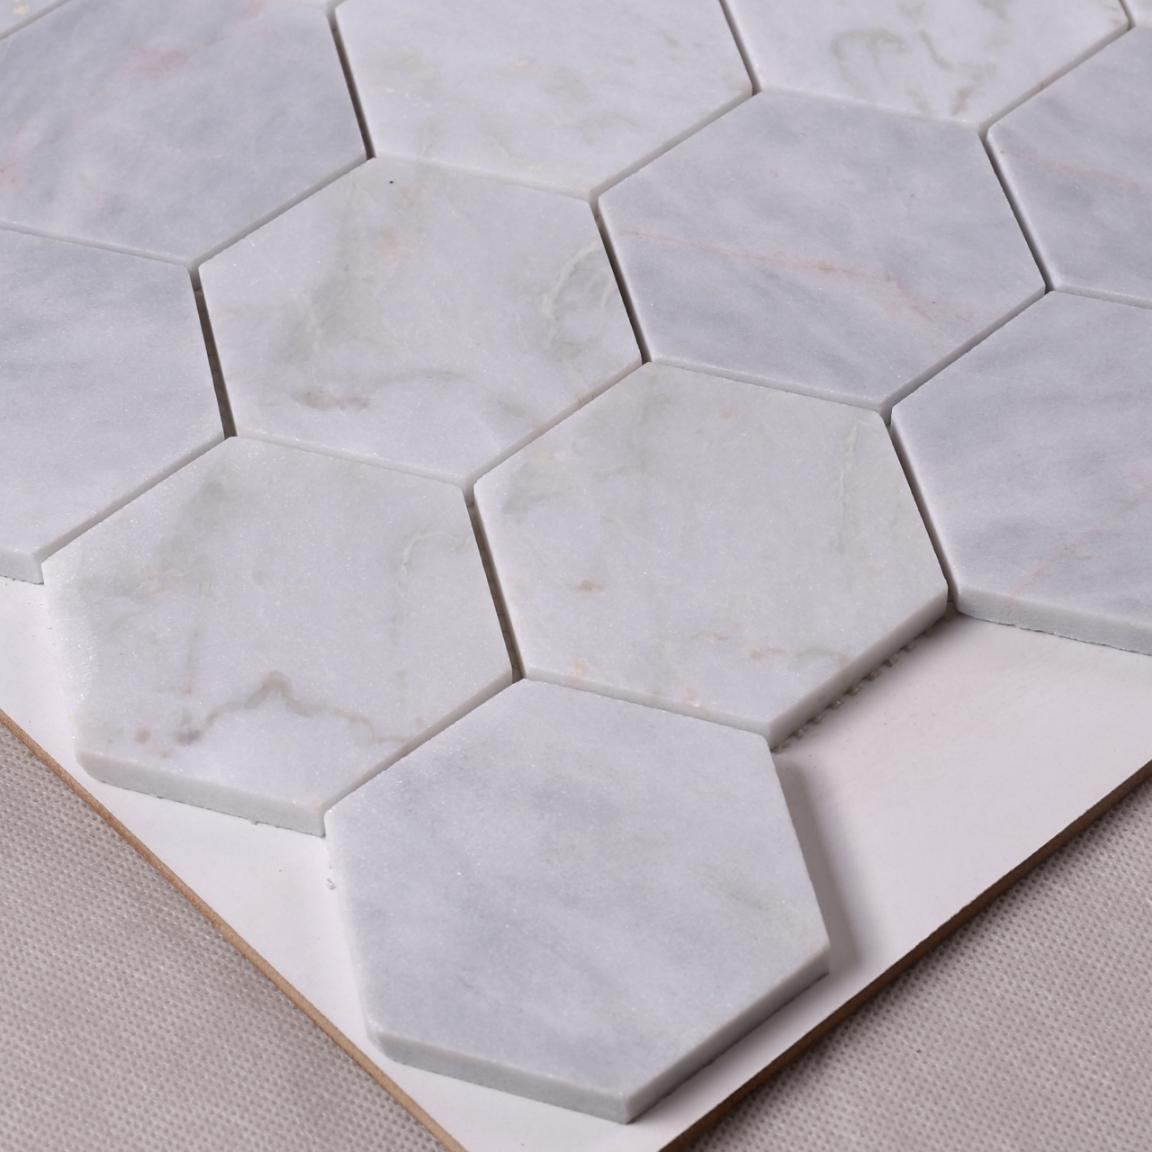 stone carrara herringbone design for bathroom Heng Xing-2